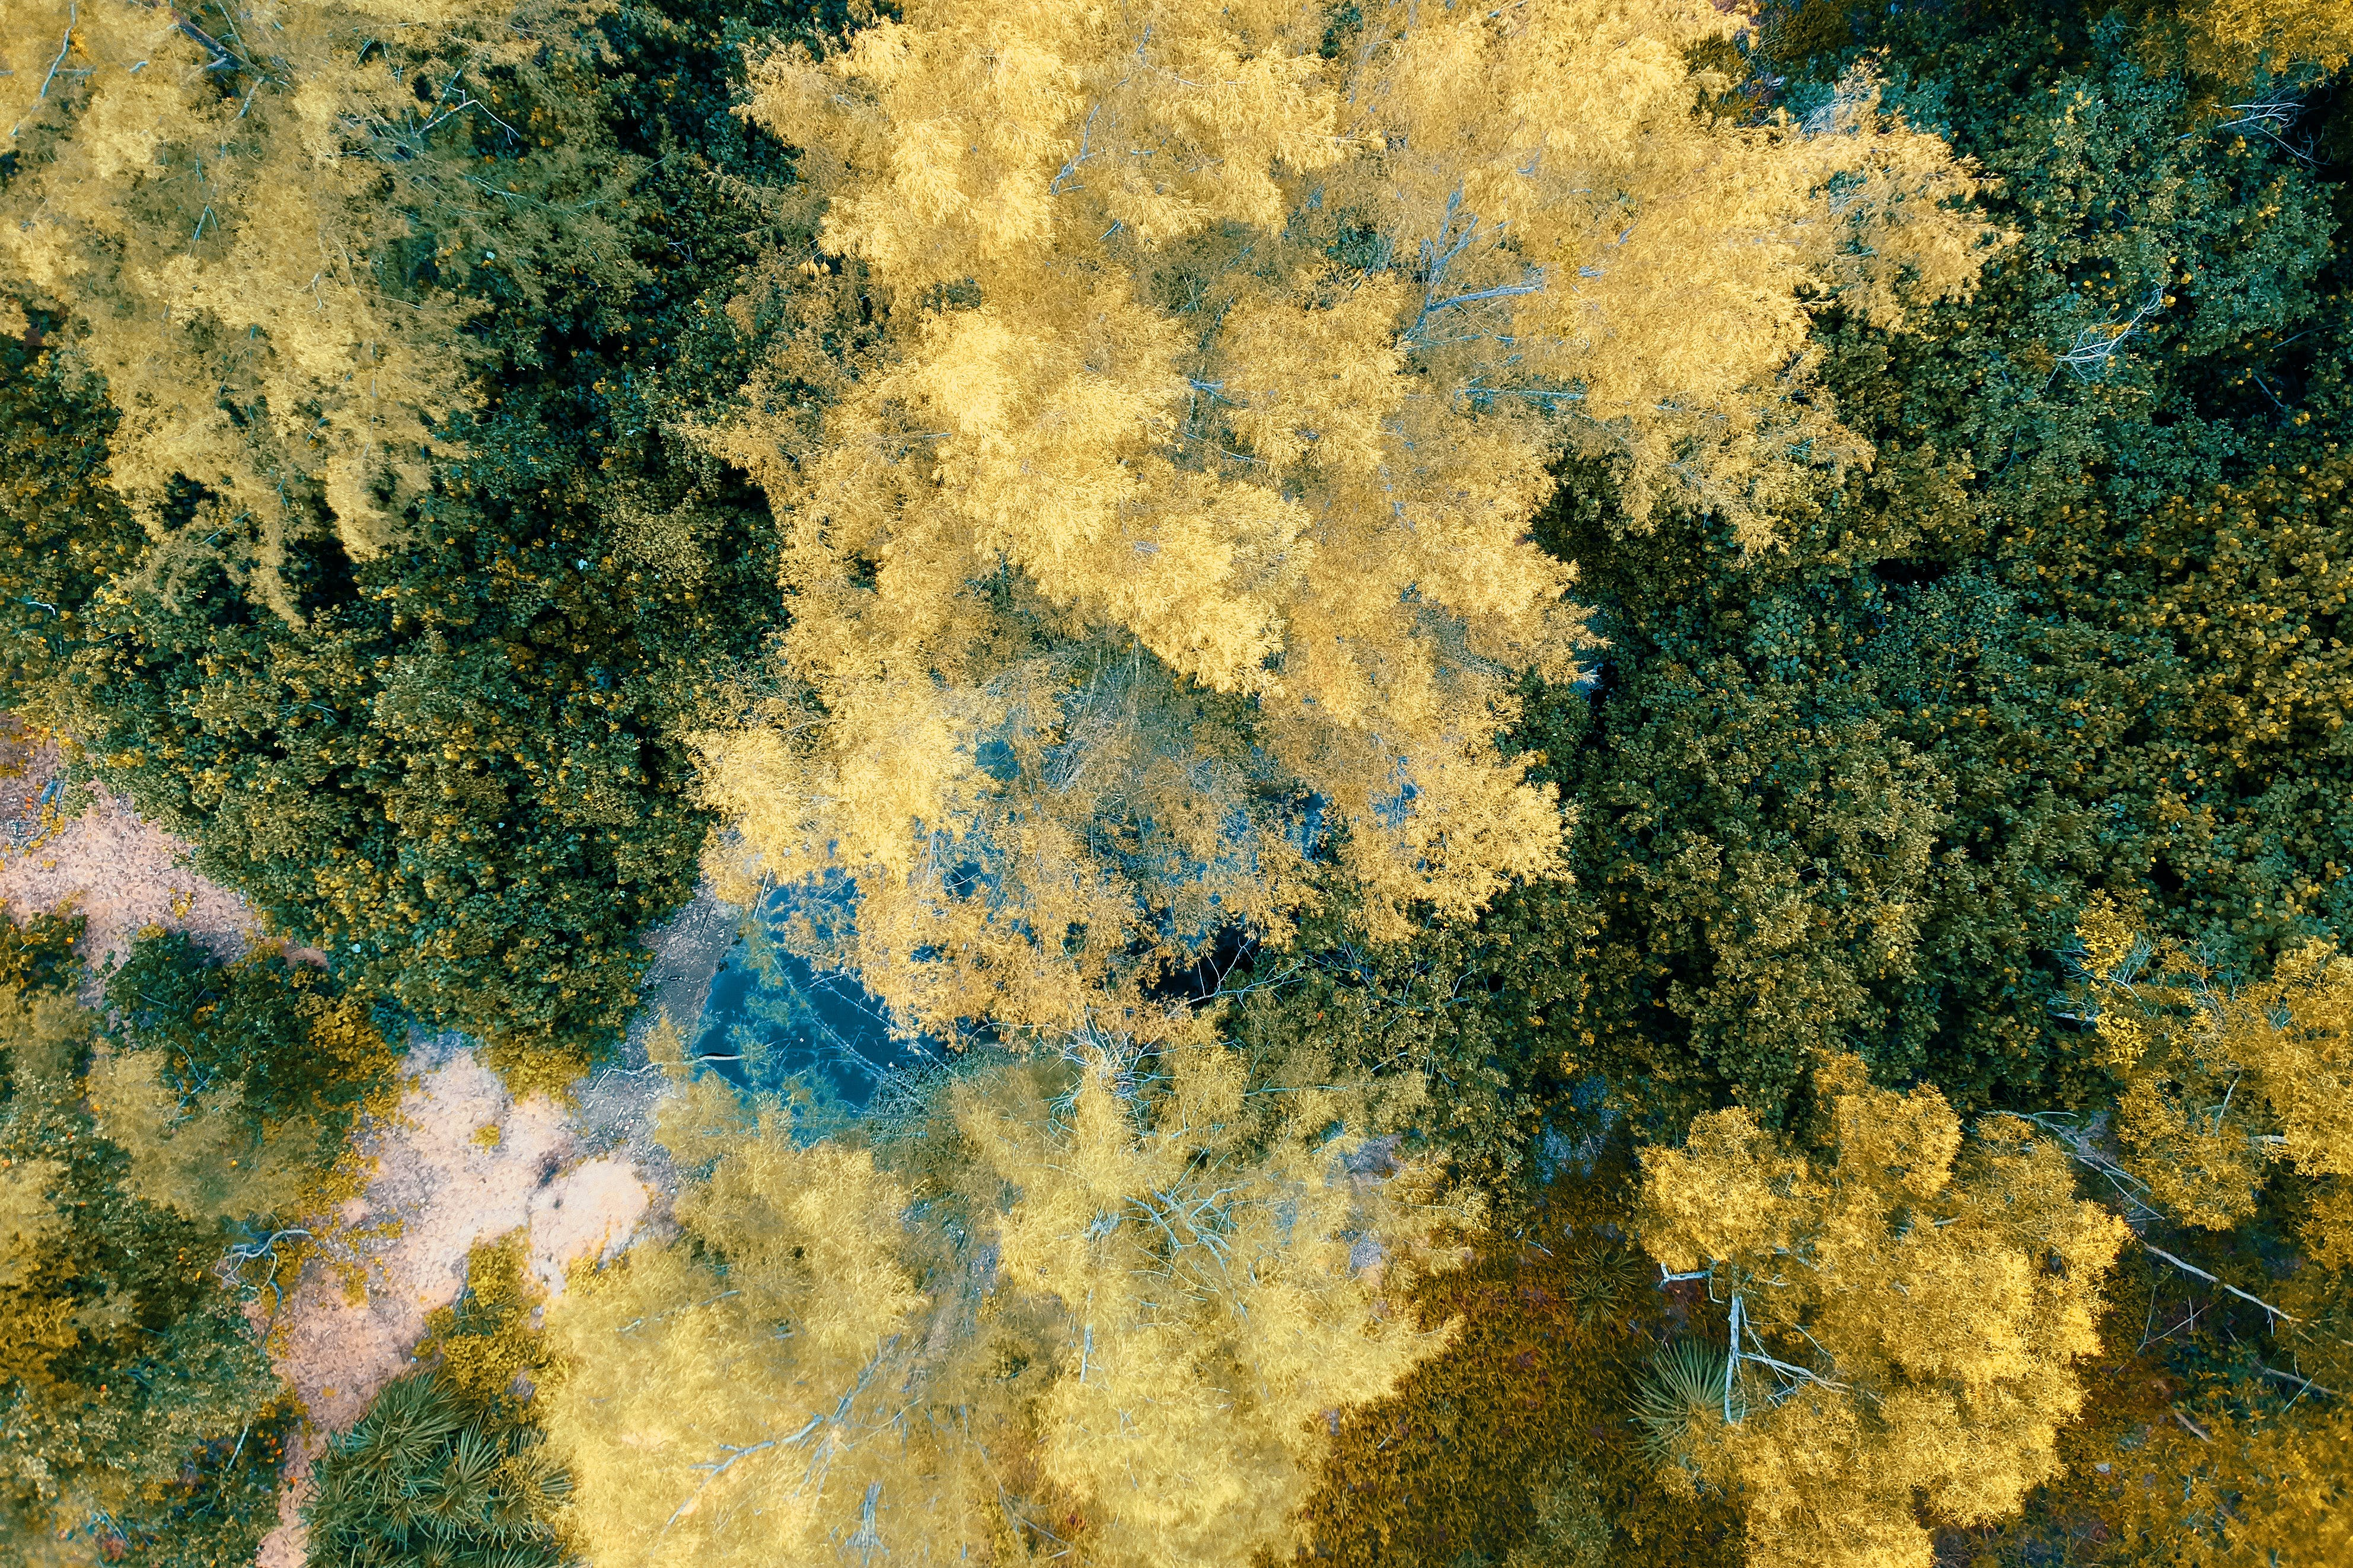 Top View Photo of Yellow and Green Leafed Trees